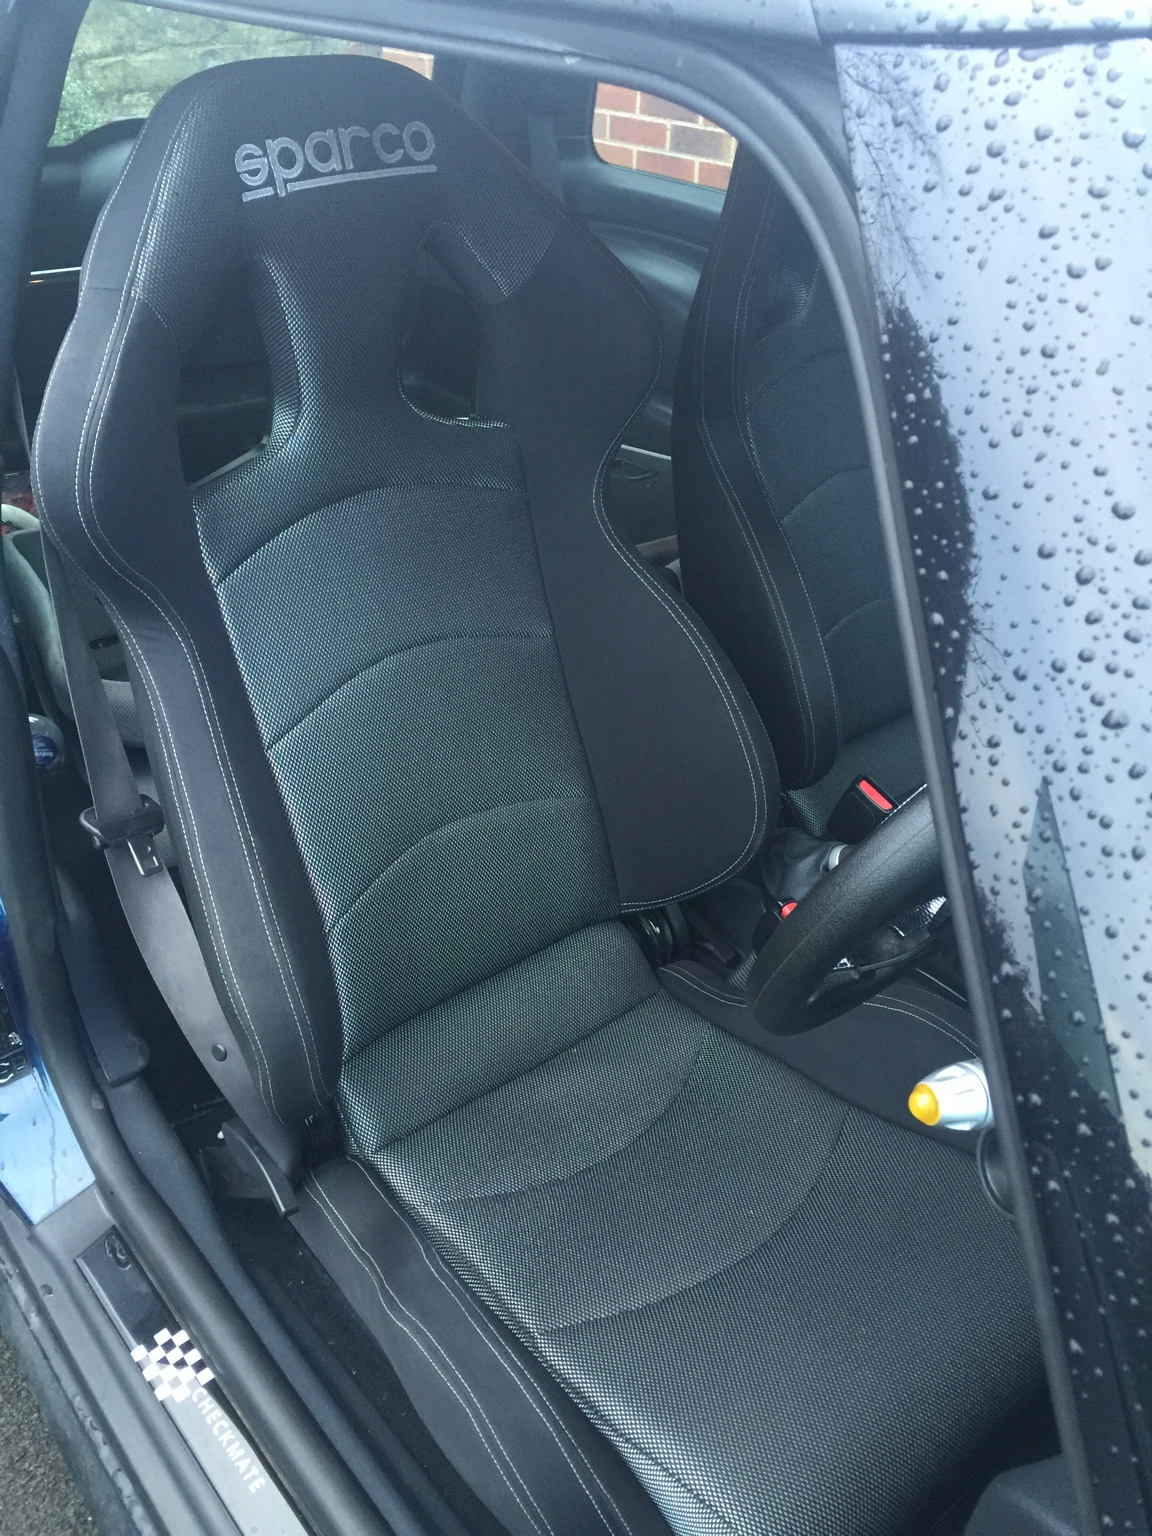 Sparco reclining seats and sparco mounts r53